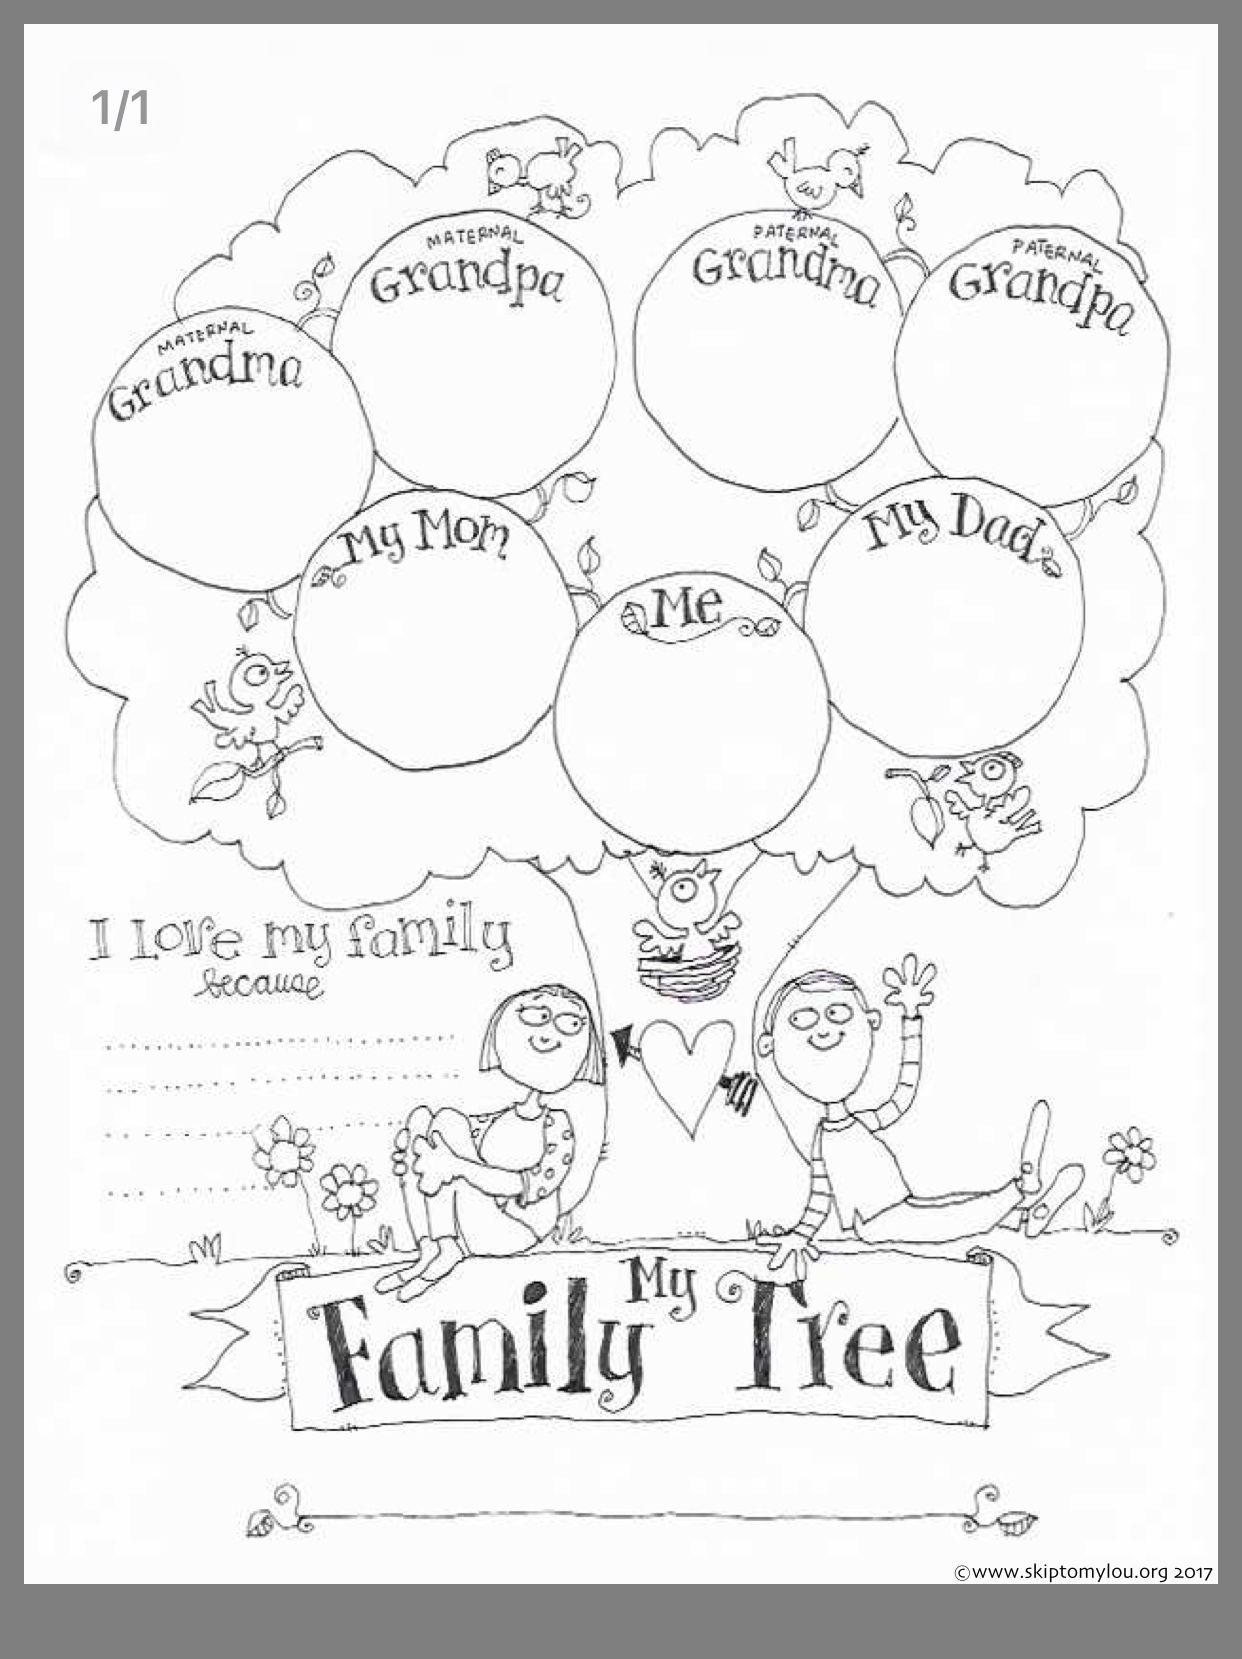 Family Tree Activity Image By Hsu Annie On Kid Family Tree